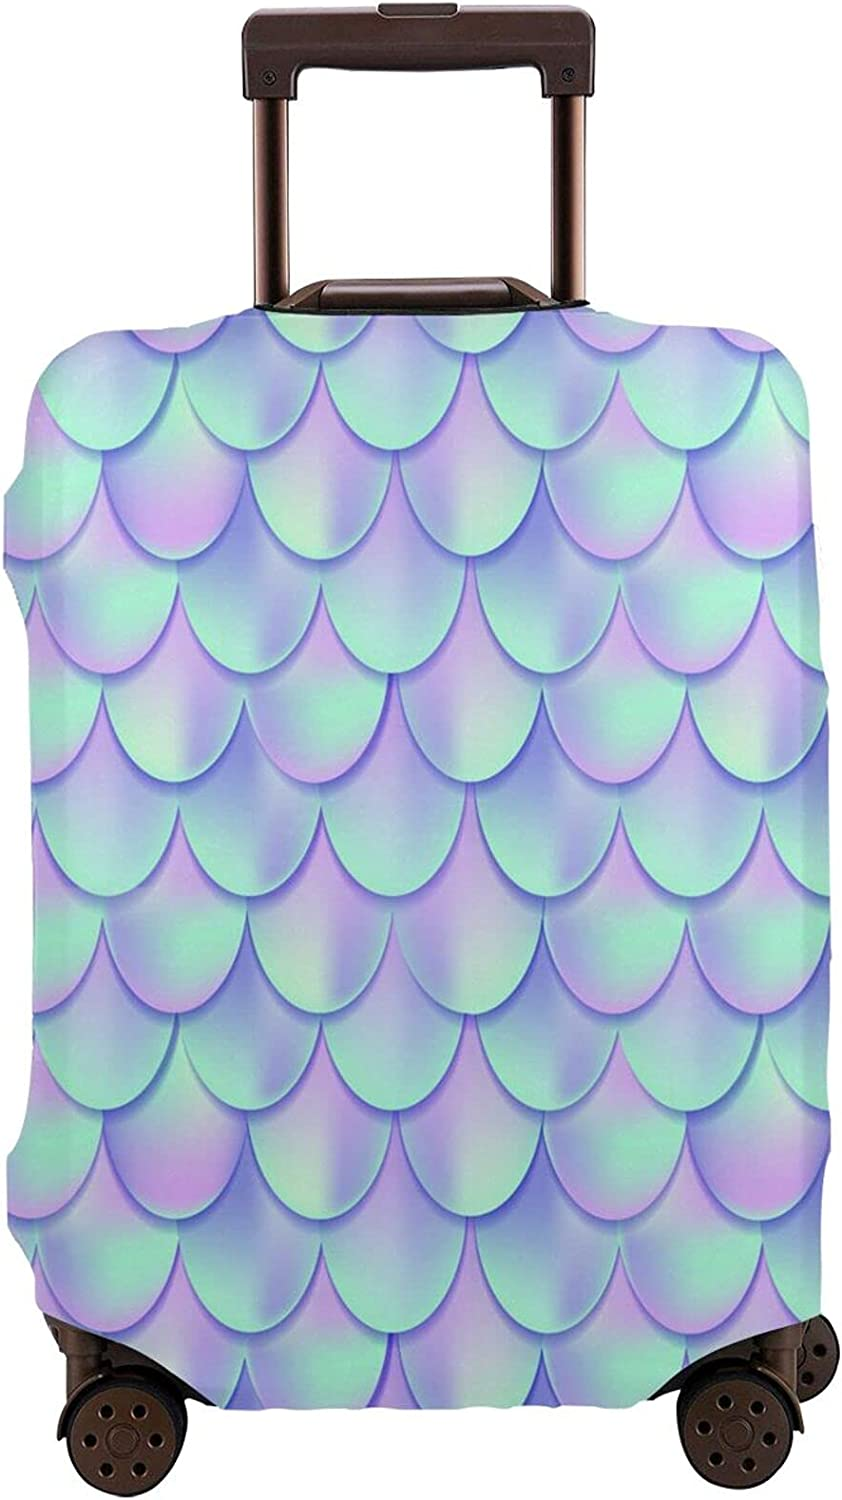 Feim-Ao Low price Travel Luggage Cover Purple Max 52% OFF Mermaid Skin Washable Suitca